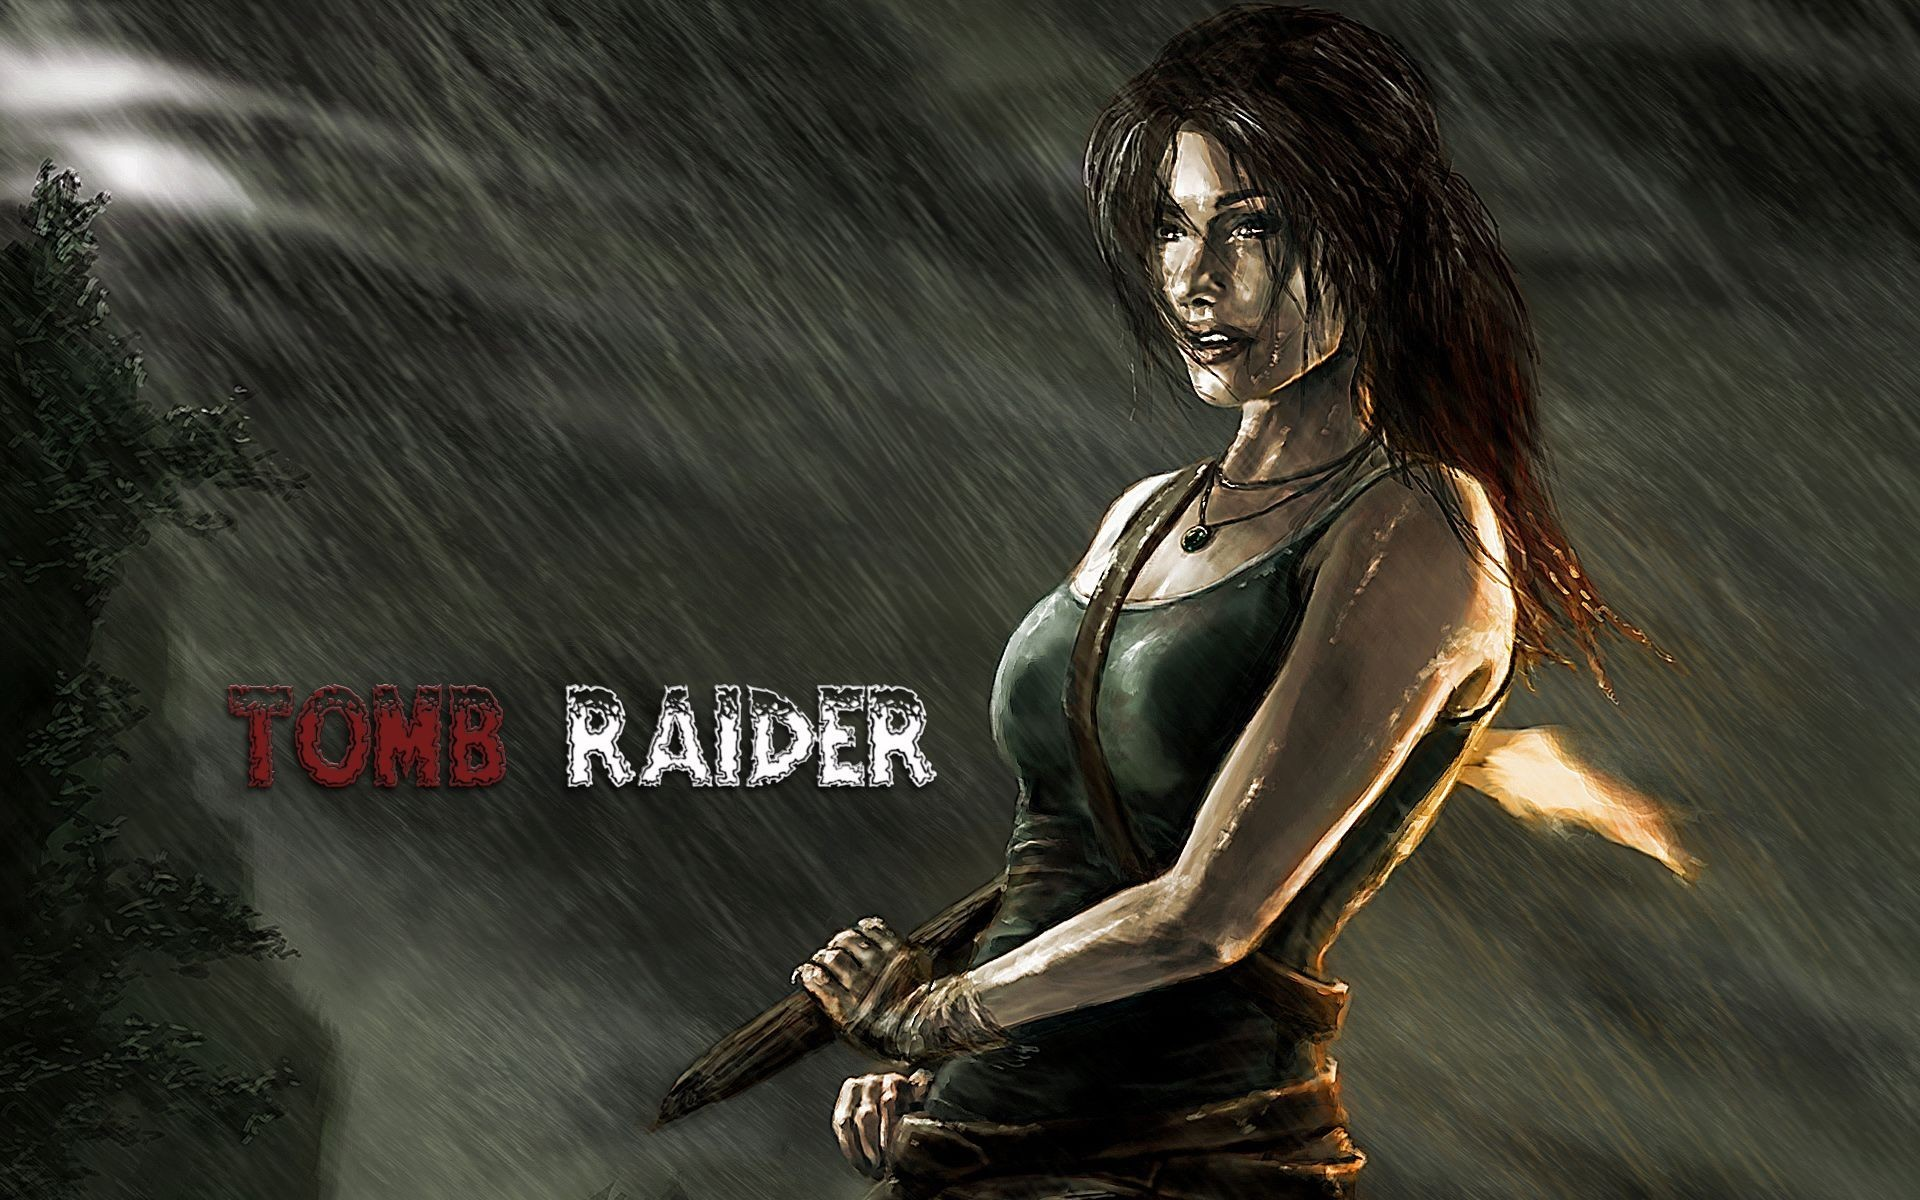 Tomb-raider-art